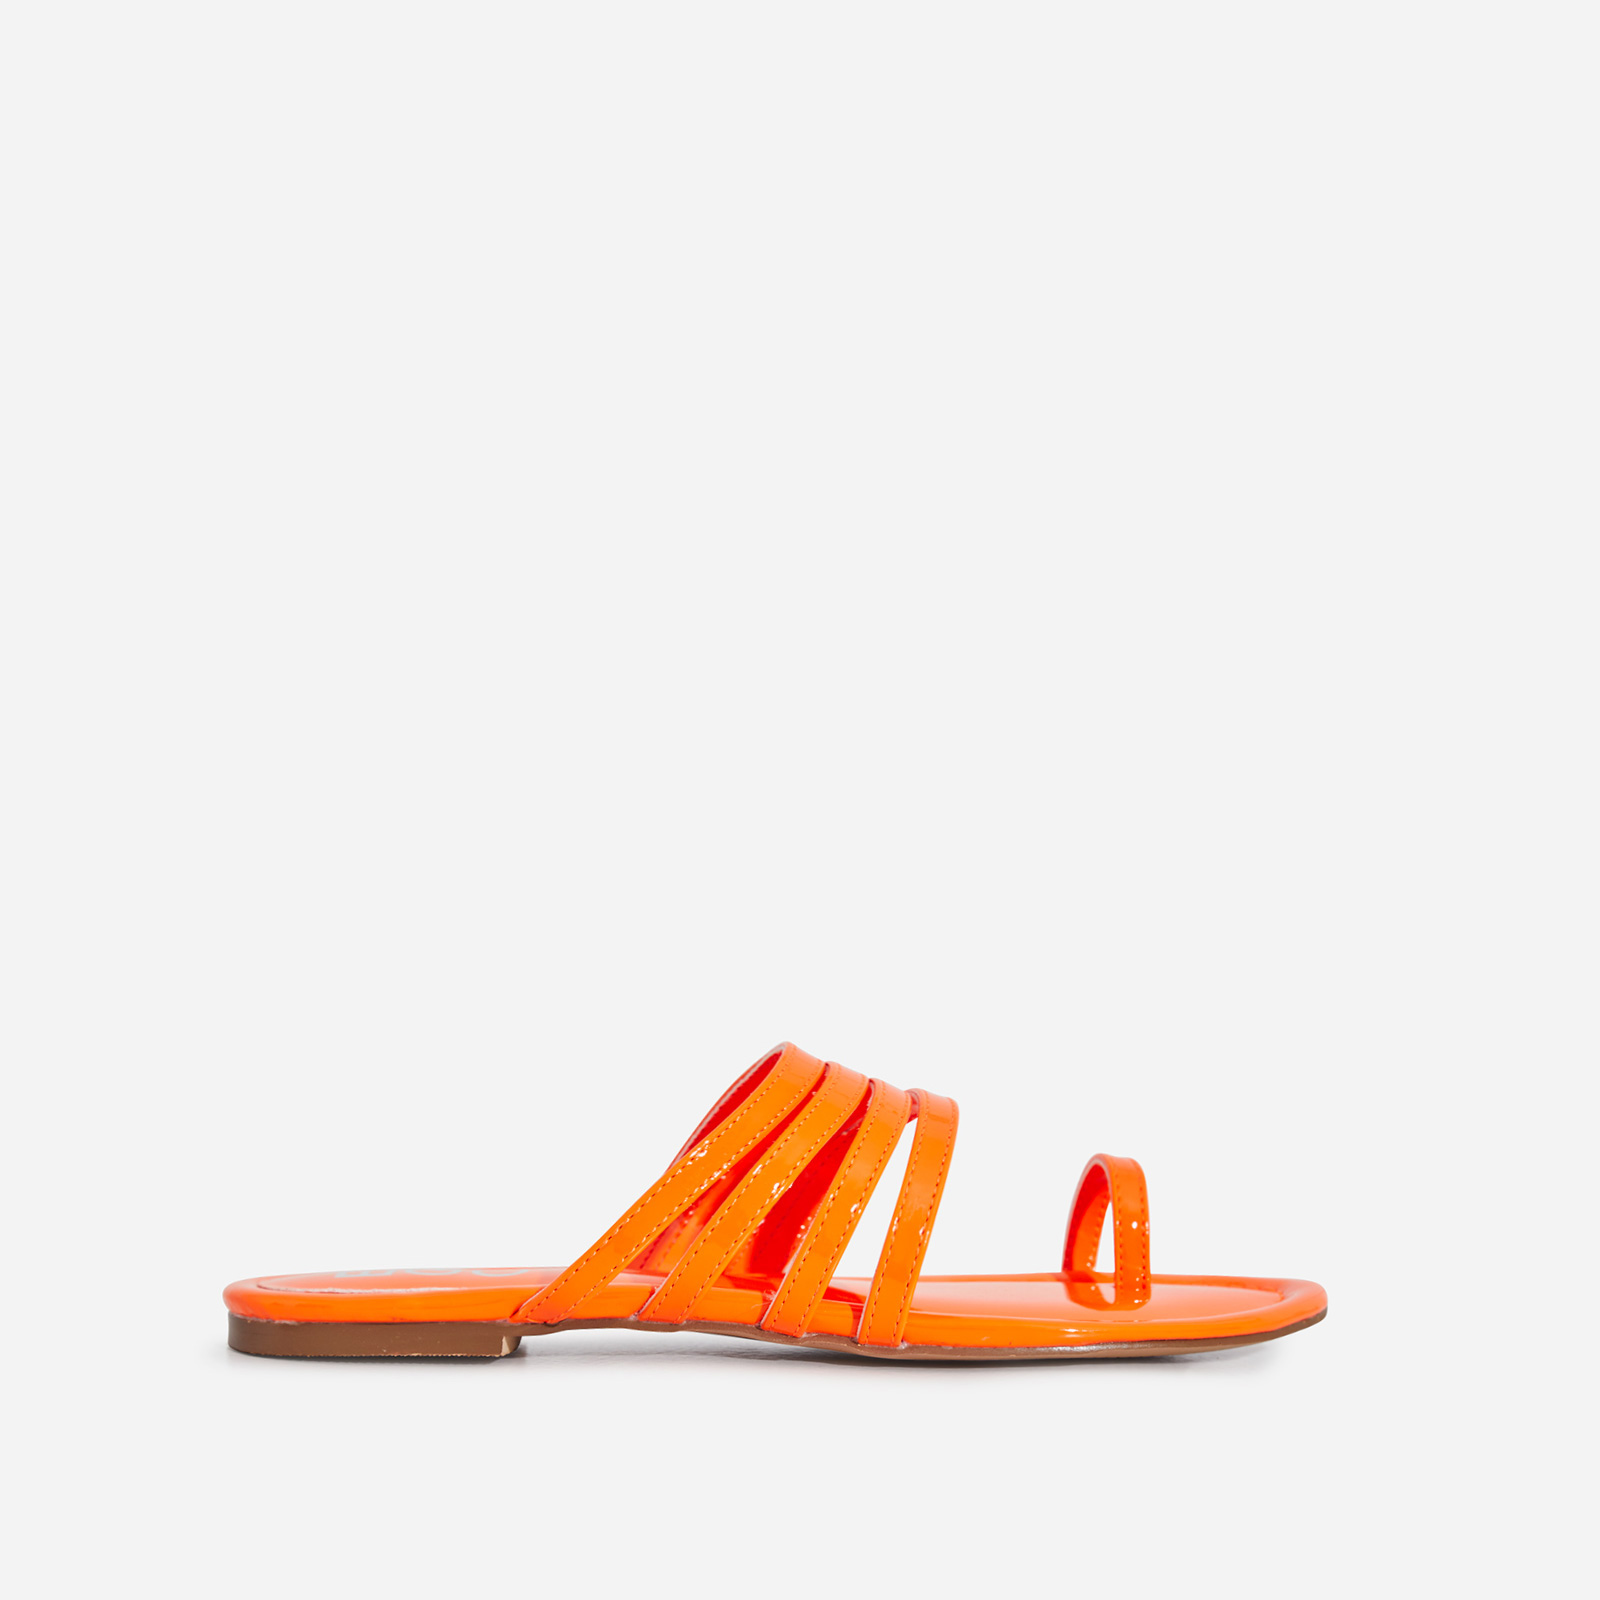 Dax Toe Strap Flat Sandal In Orange Patent